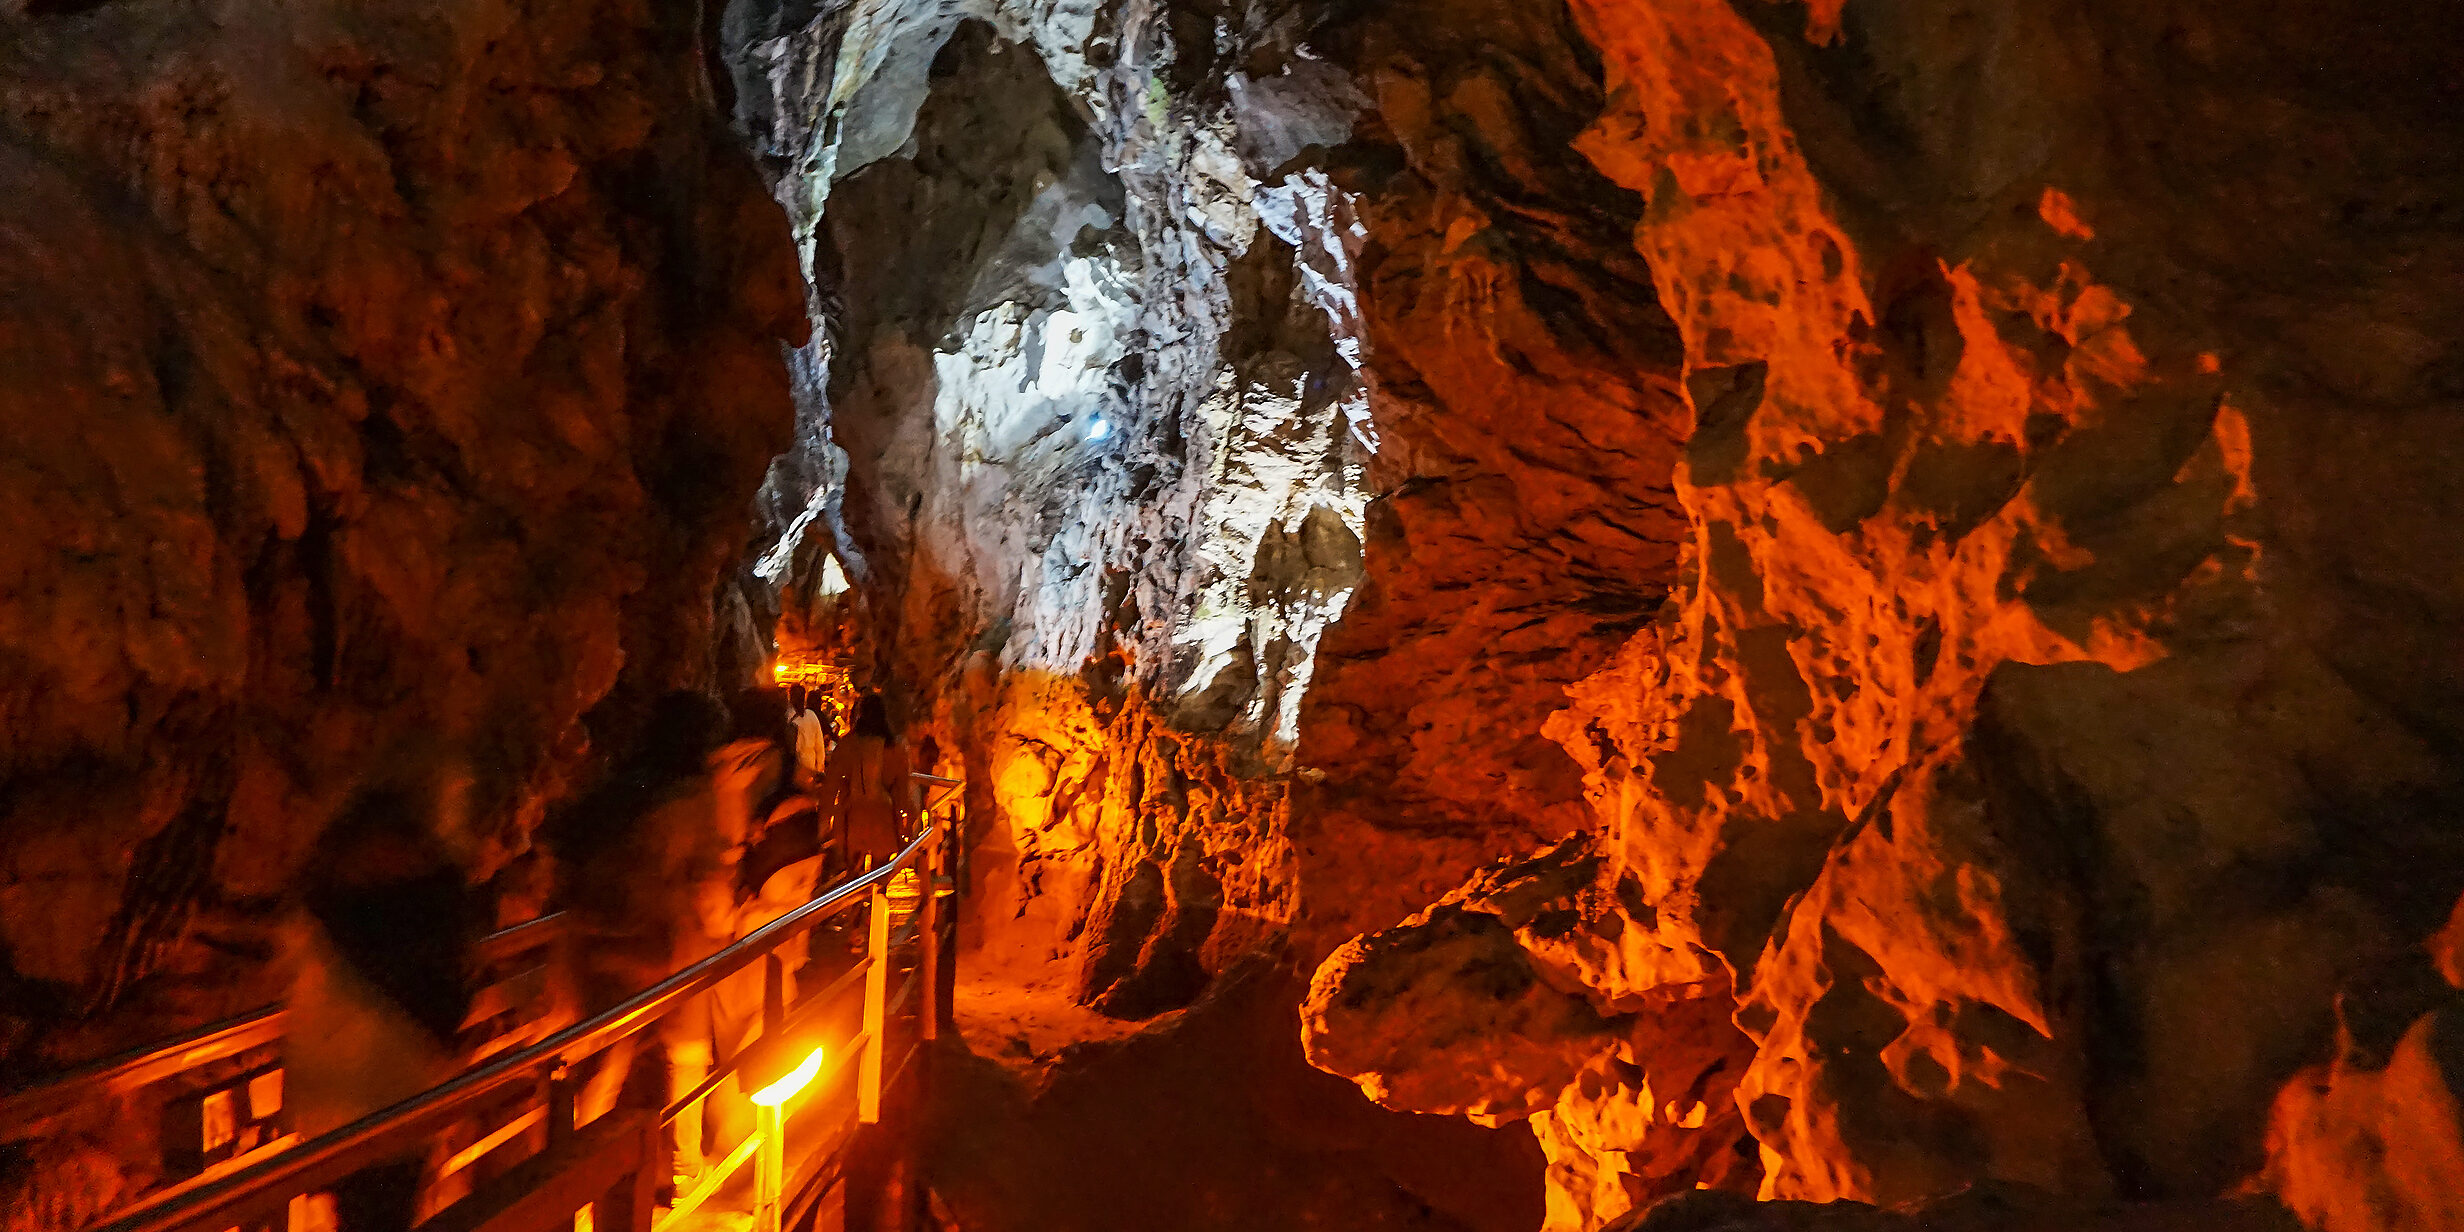 The spectacular and mysterious Cave of the Lakes